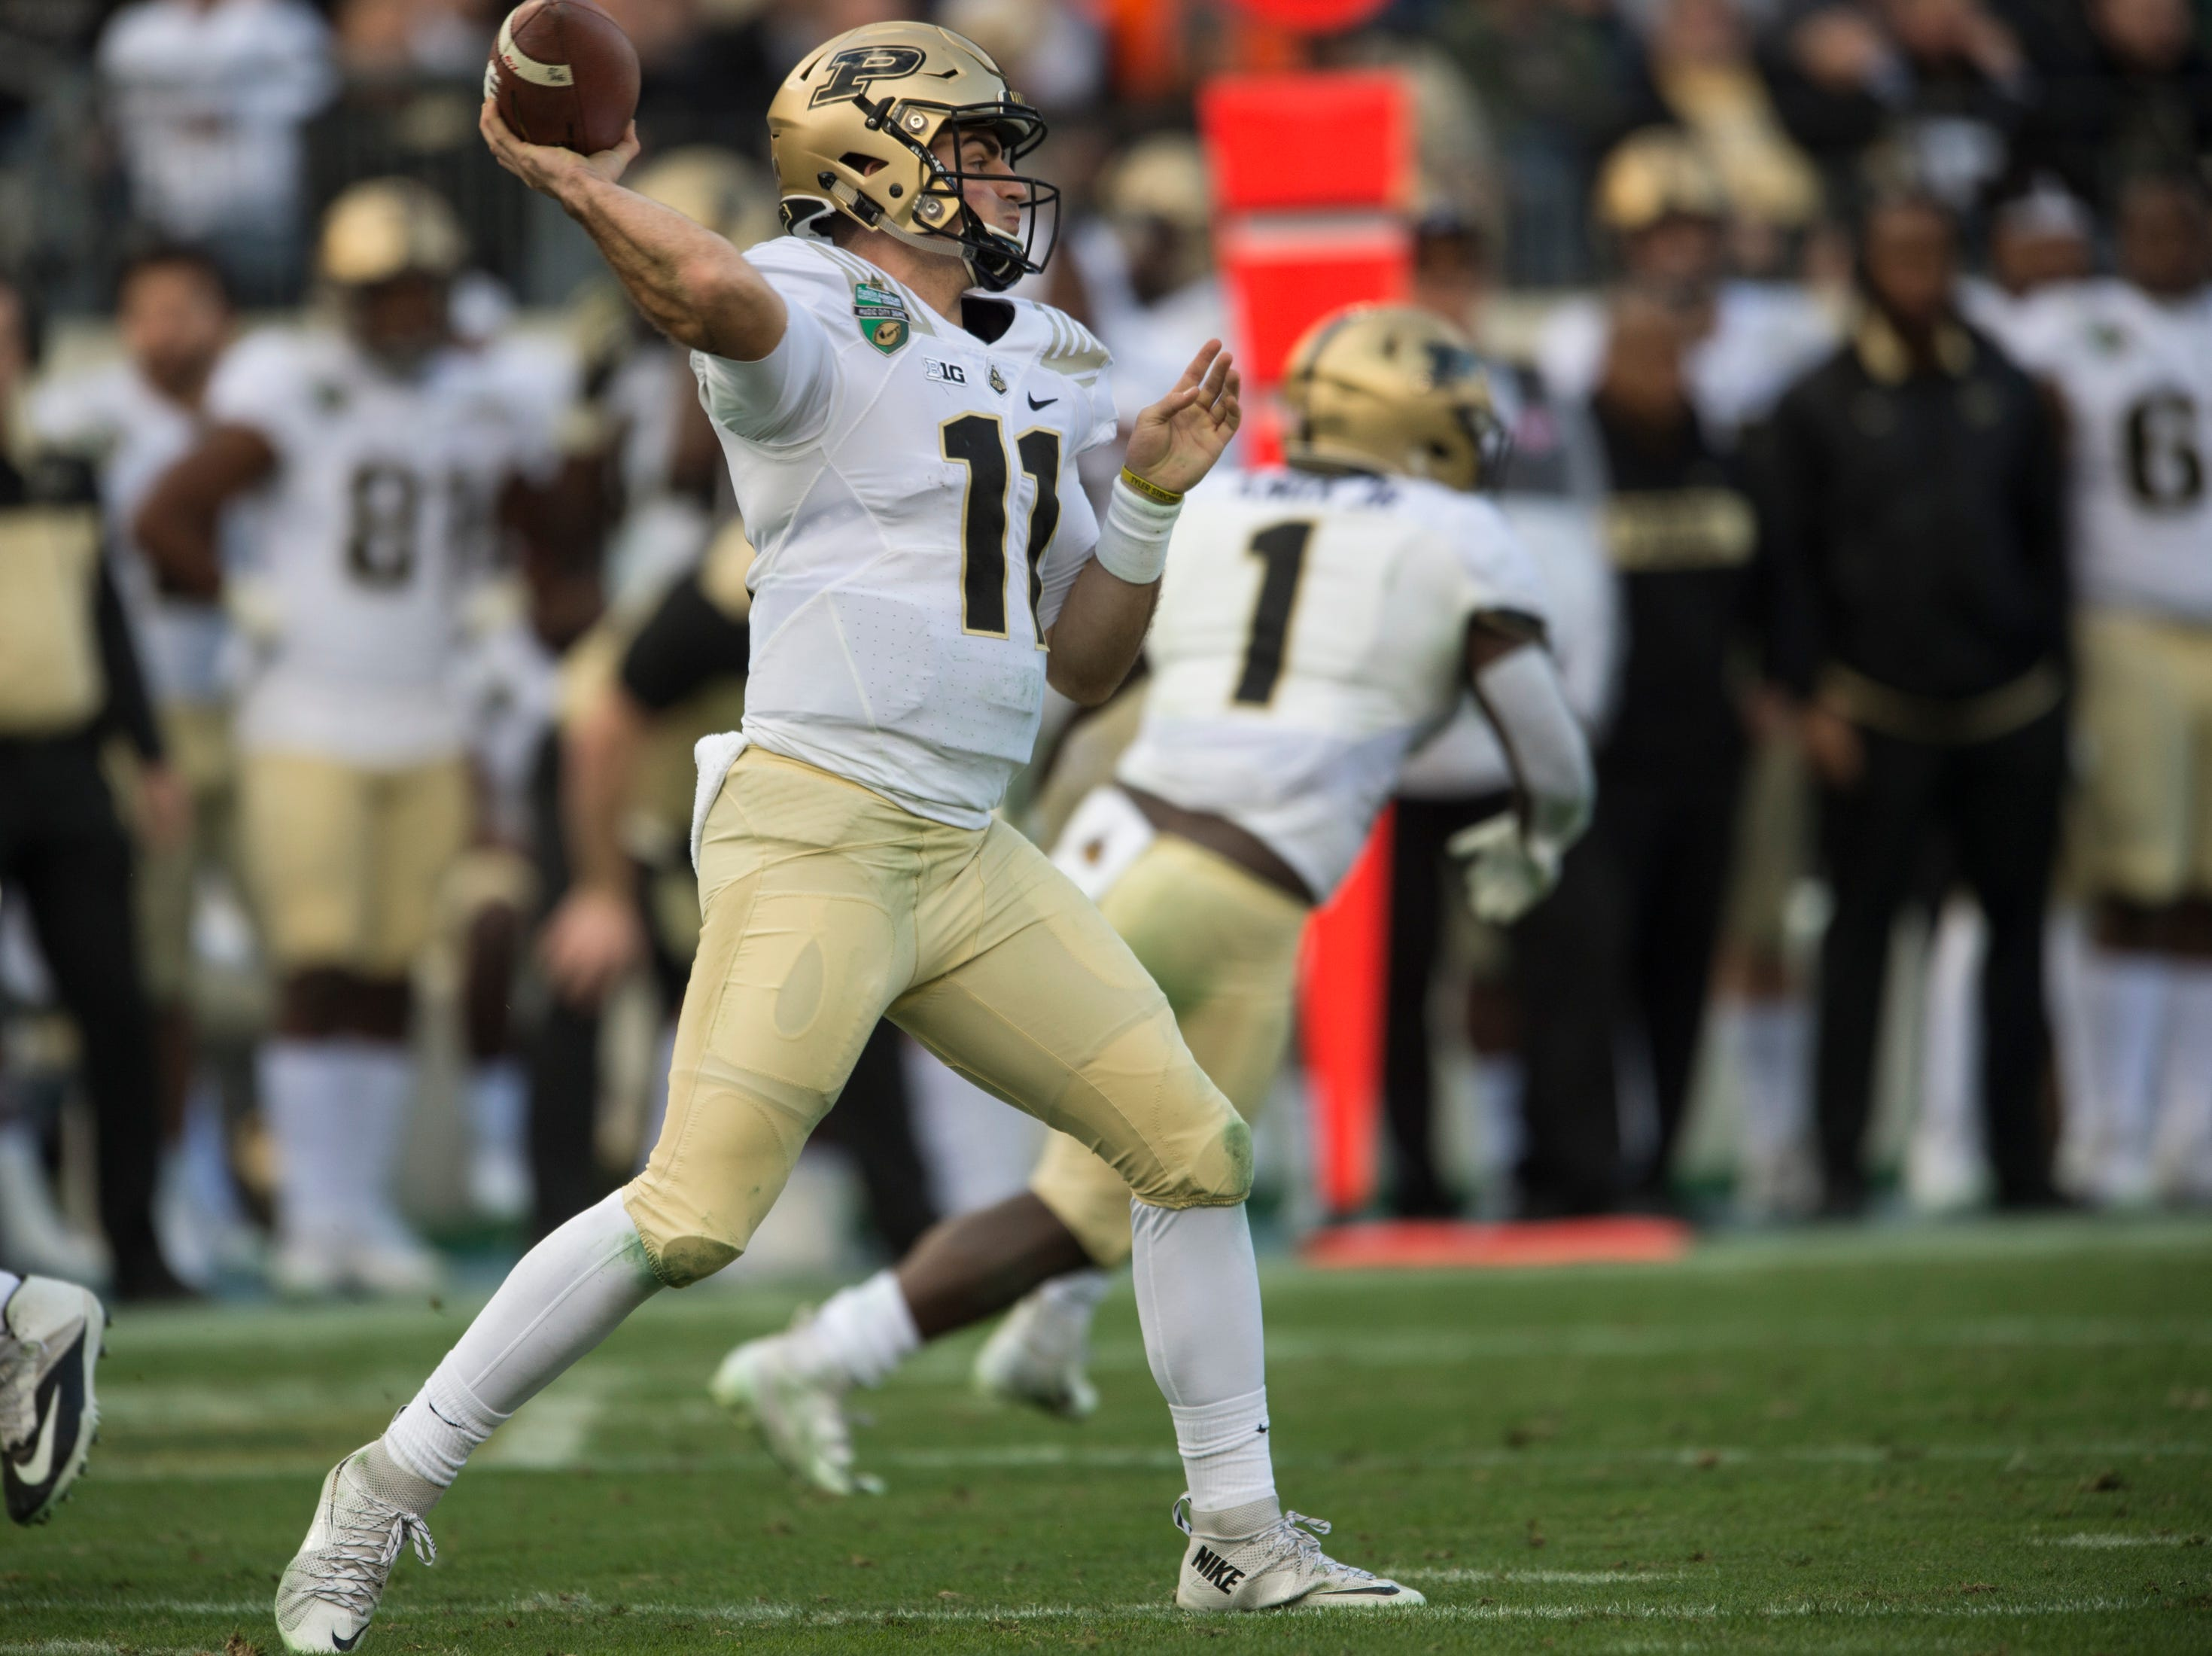 Purdue quarterback David Blough (11) throws the ball down the field during the Music City Bowl at Nissan Stadium in Nashville, Tenn., on Friday, Dec. 28, 2018. Auburn leads Purdue 56-7 at halftime.